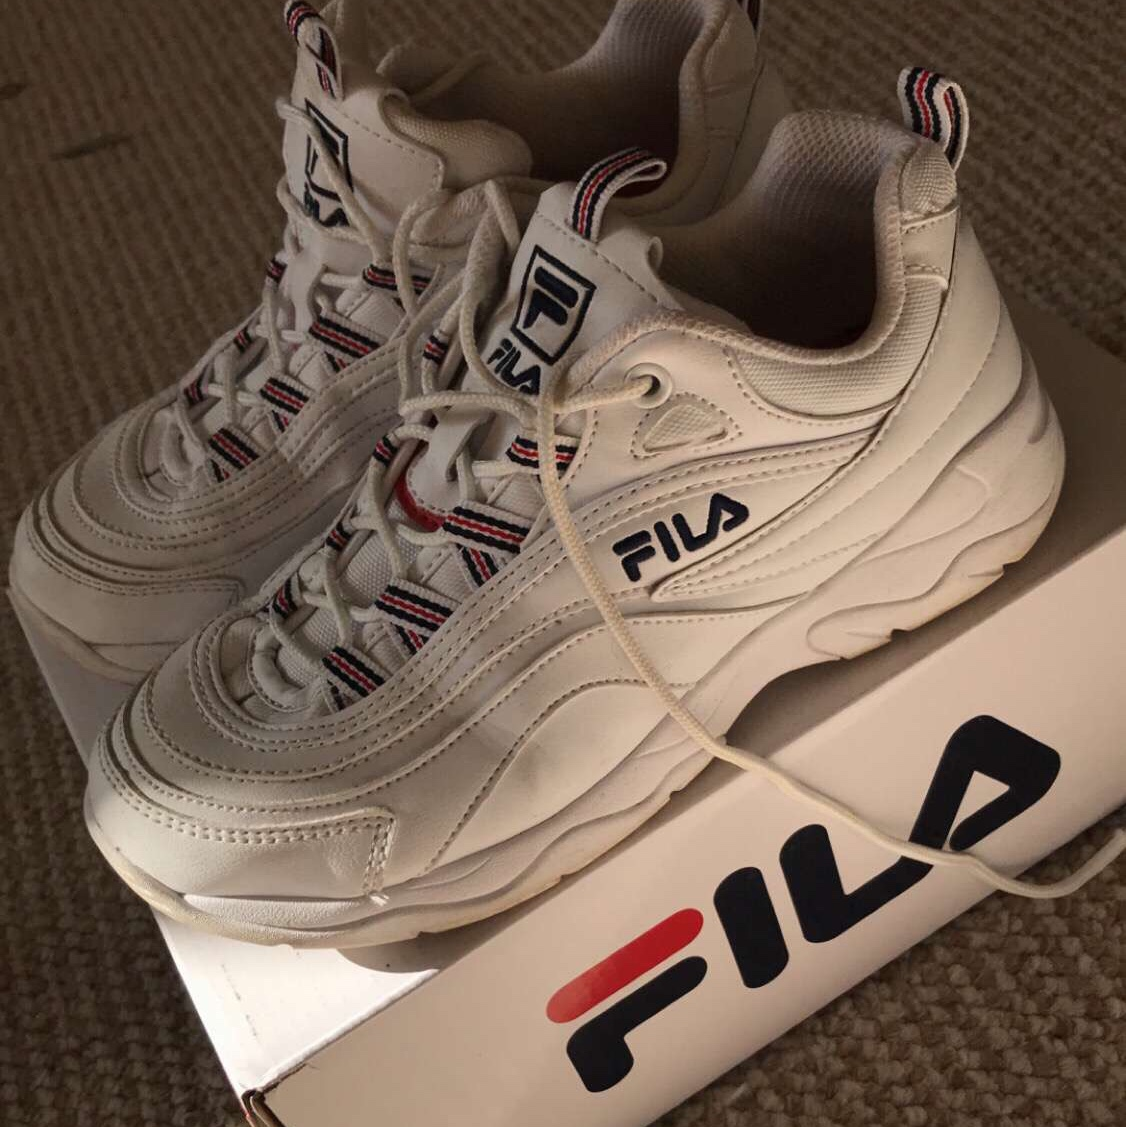 Fila Rays UK 5 Very good condition Comes with OG box Depop